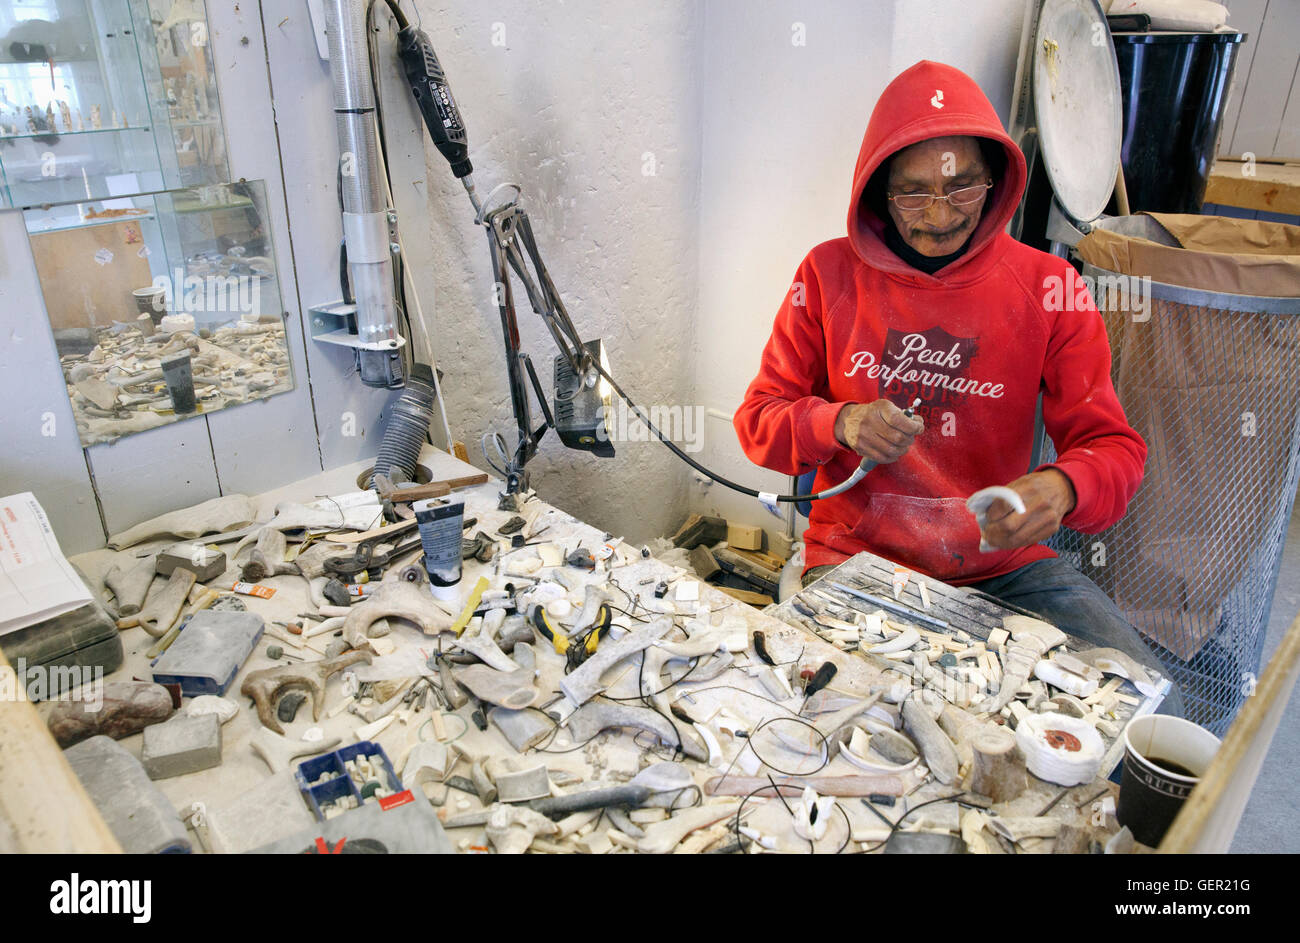 A man making bone carvings at a workshop in Ilulissat, Greenland - Stock Image